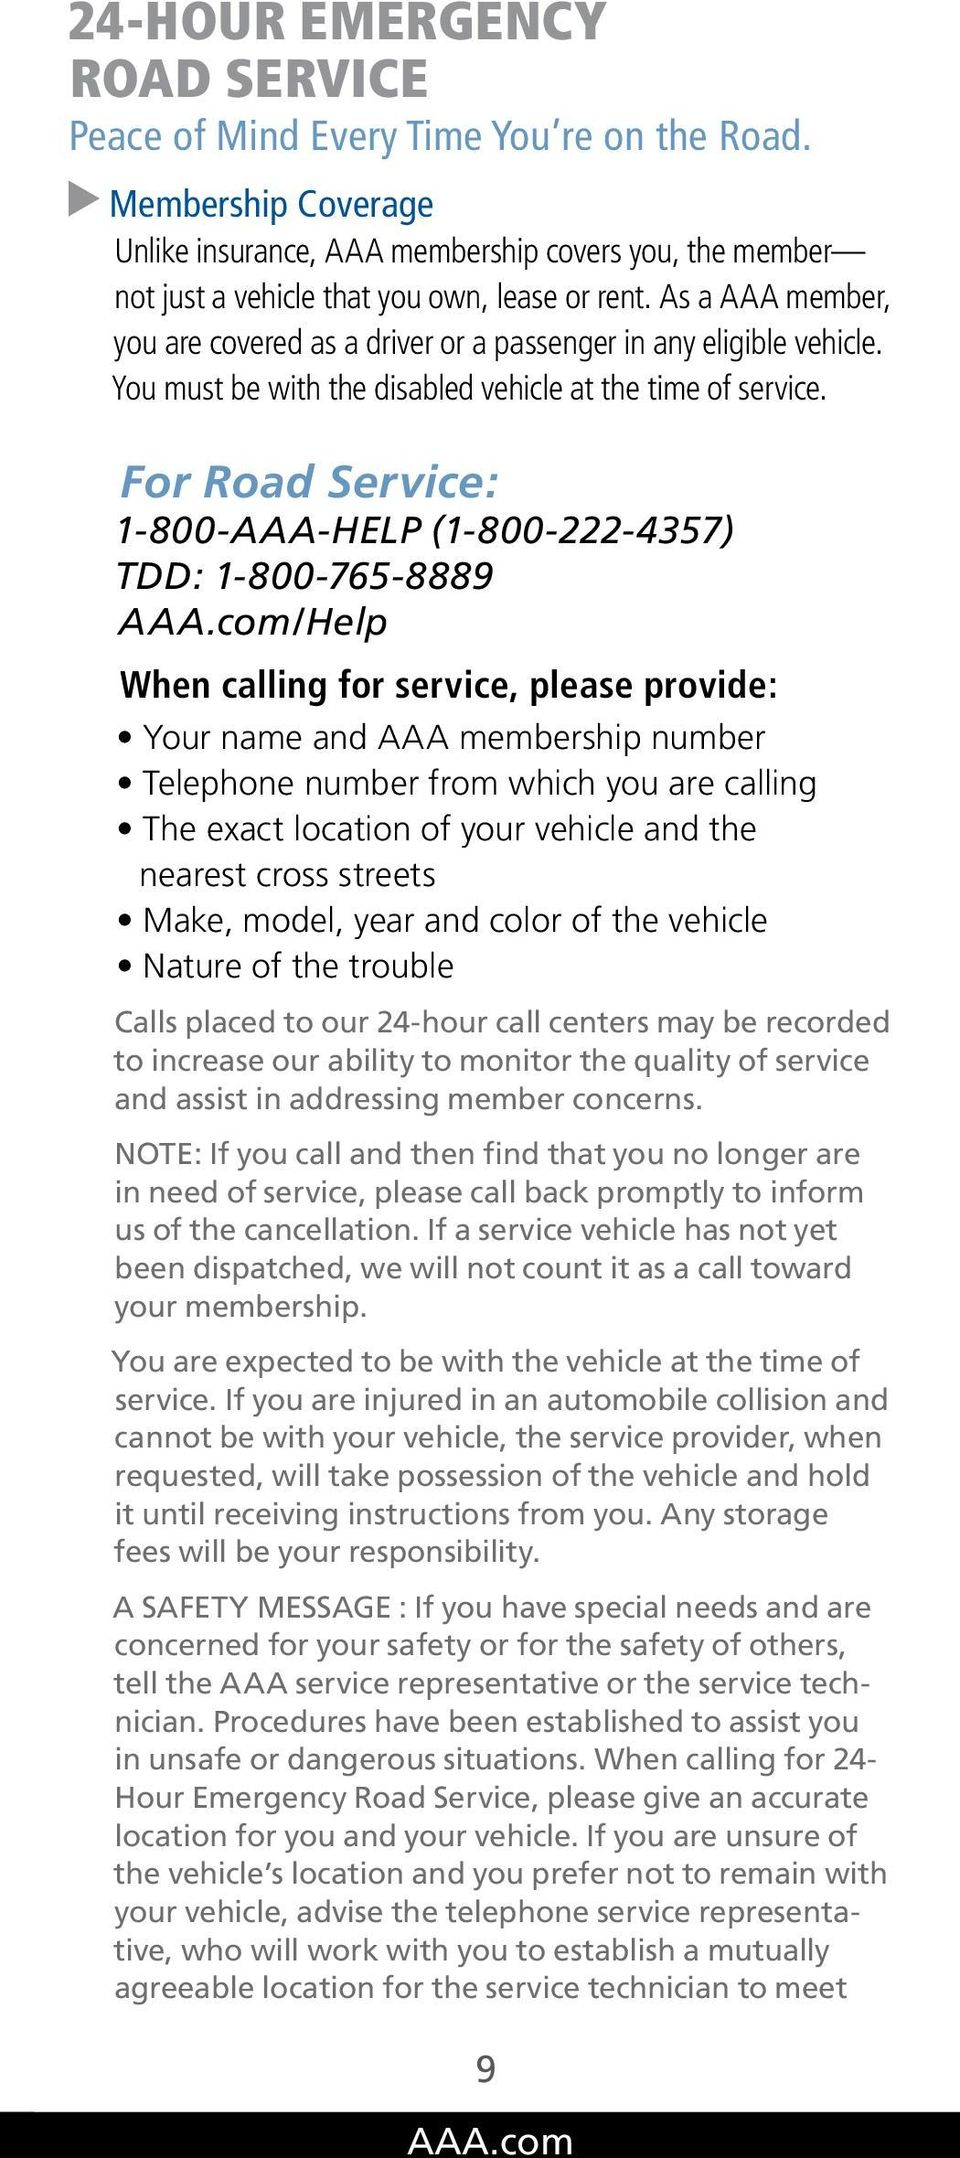 For Road Service: 1-800-AAA-HELP (1-800-222-4357) TDD: 1-800-765-8889 /Help When calling for service, please provide: Your name and AAA membership number Telephone number from which you are calling